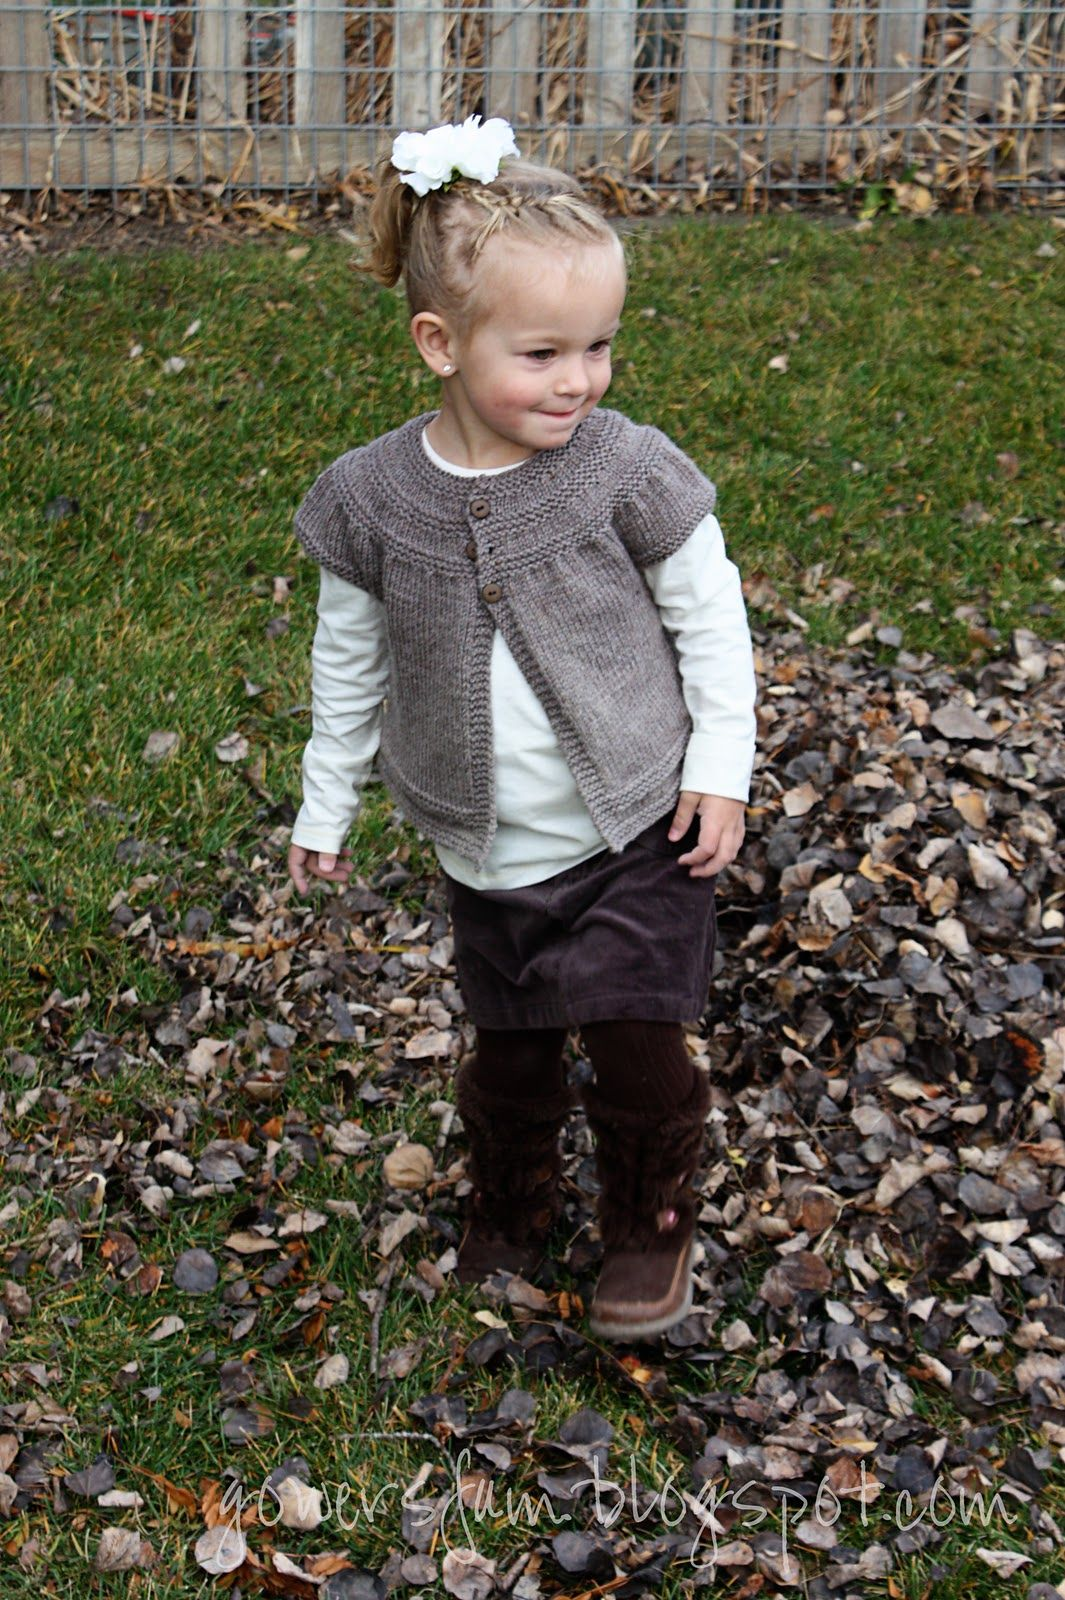 cbfd8f2c07083 Ravelry  in threes  a baby cardigan pattern by Kelly Herdrich